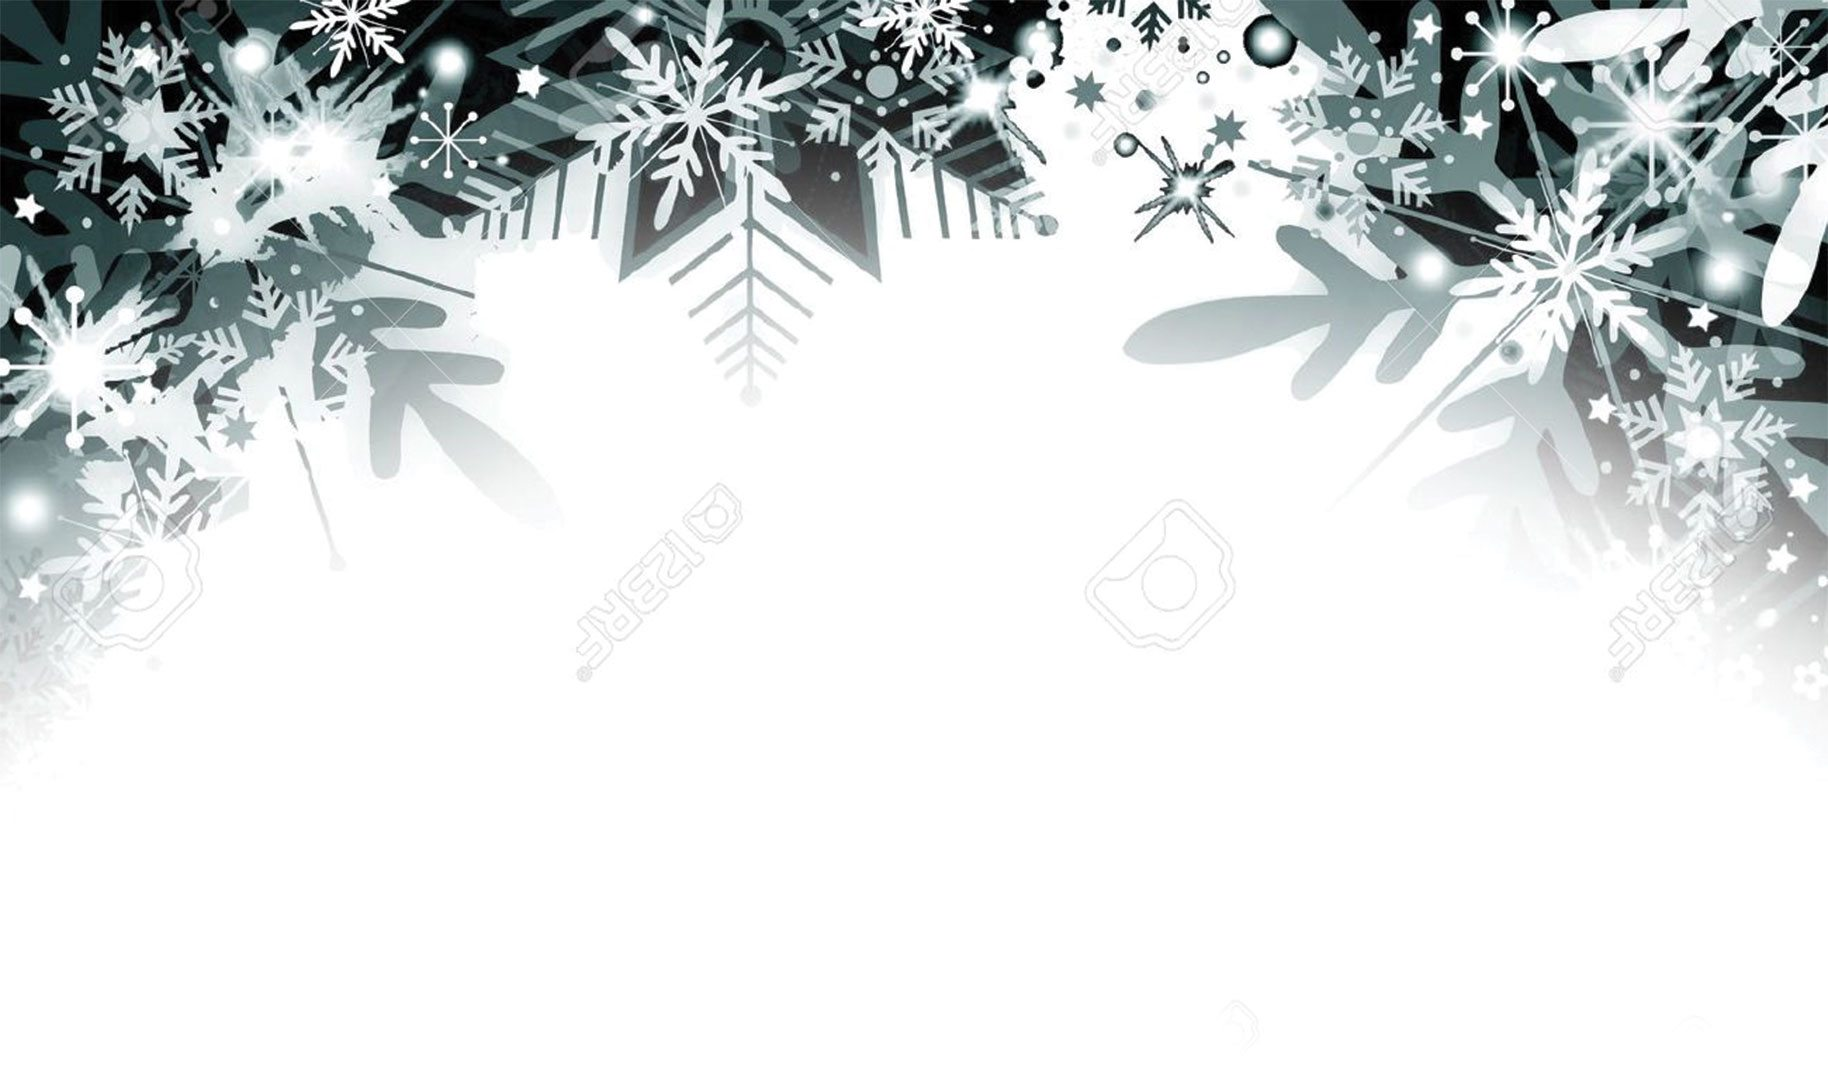 Christmas Border Black And White.11756350 Snowflakes Background Stock Photo Christmas Border